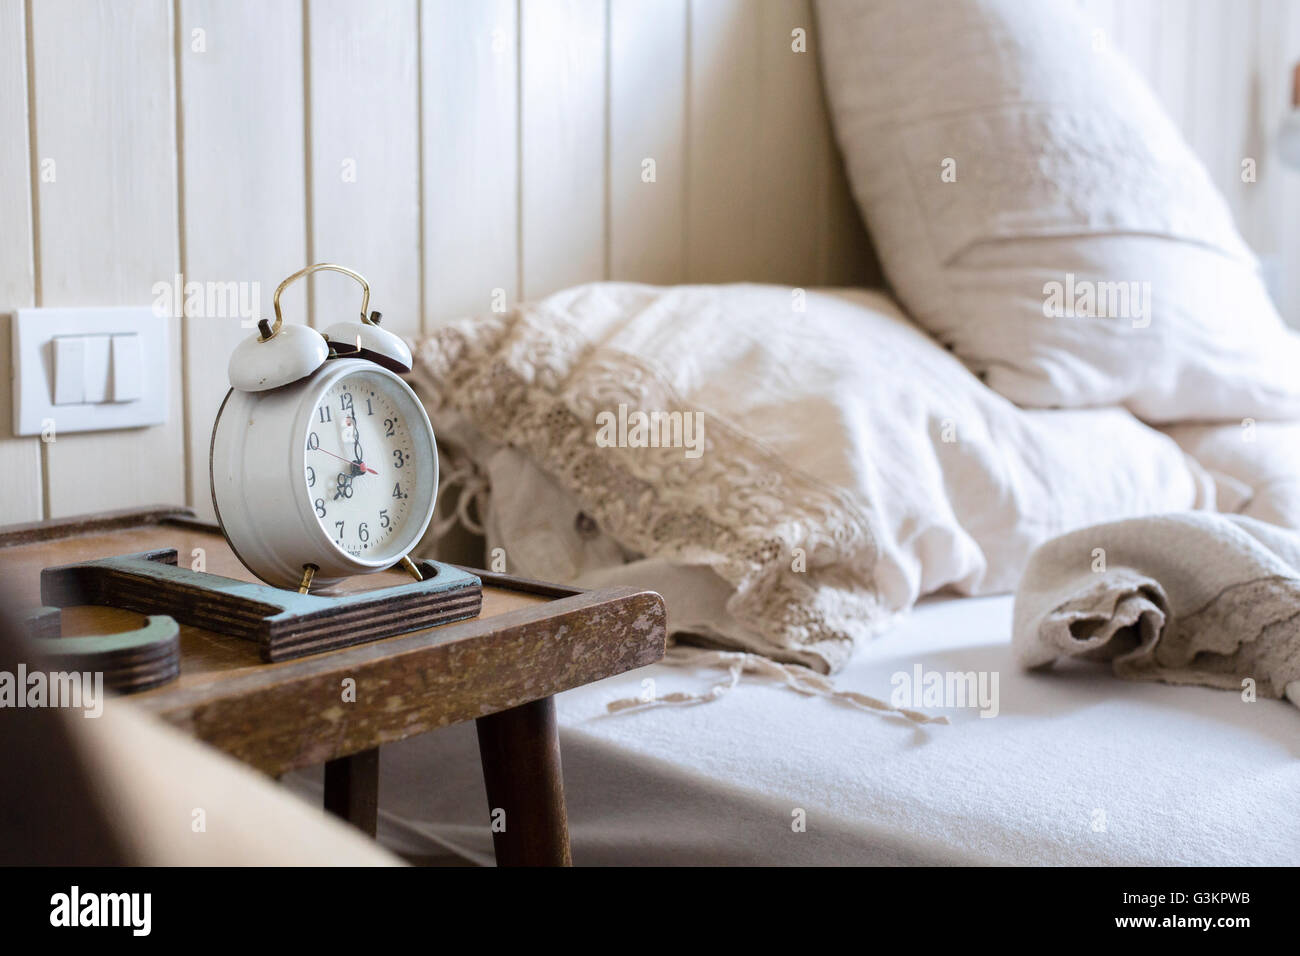 Must see Alarm Bedside - unmade-bed-alarm-clock-on-bedside-table-G3KPWB  Picture_582810.jpg